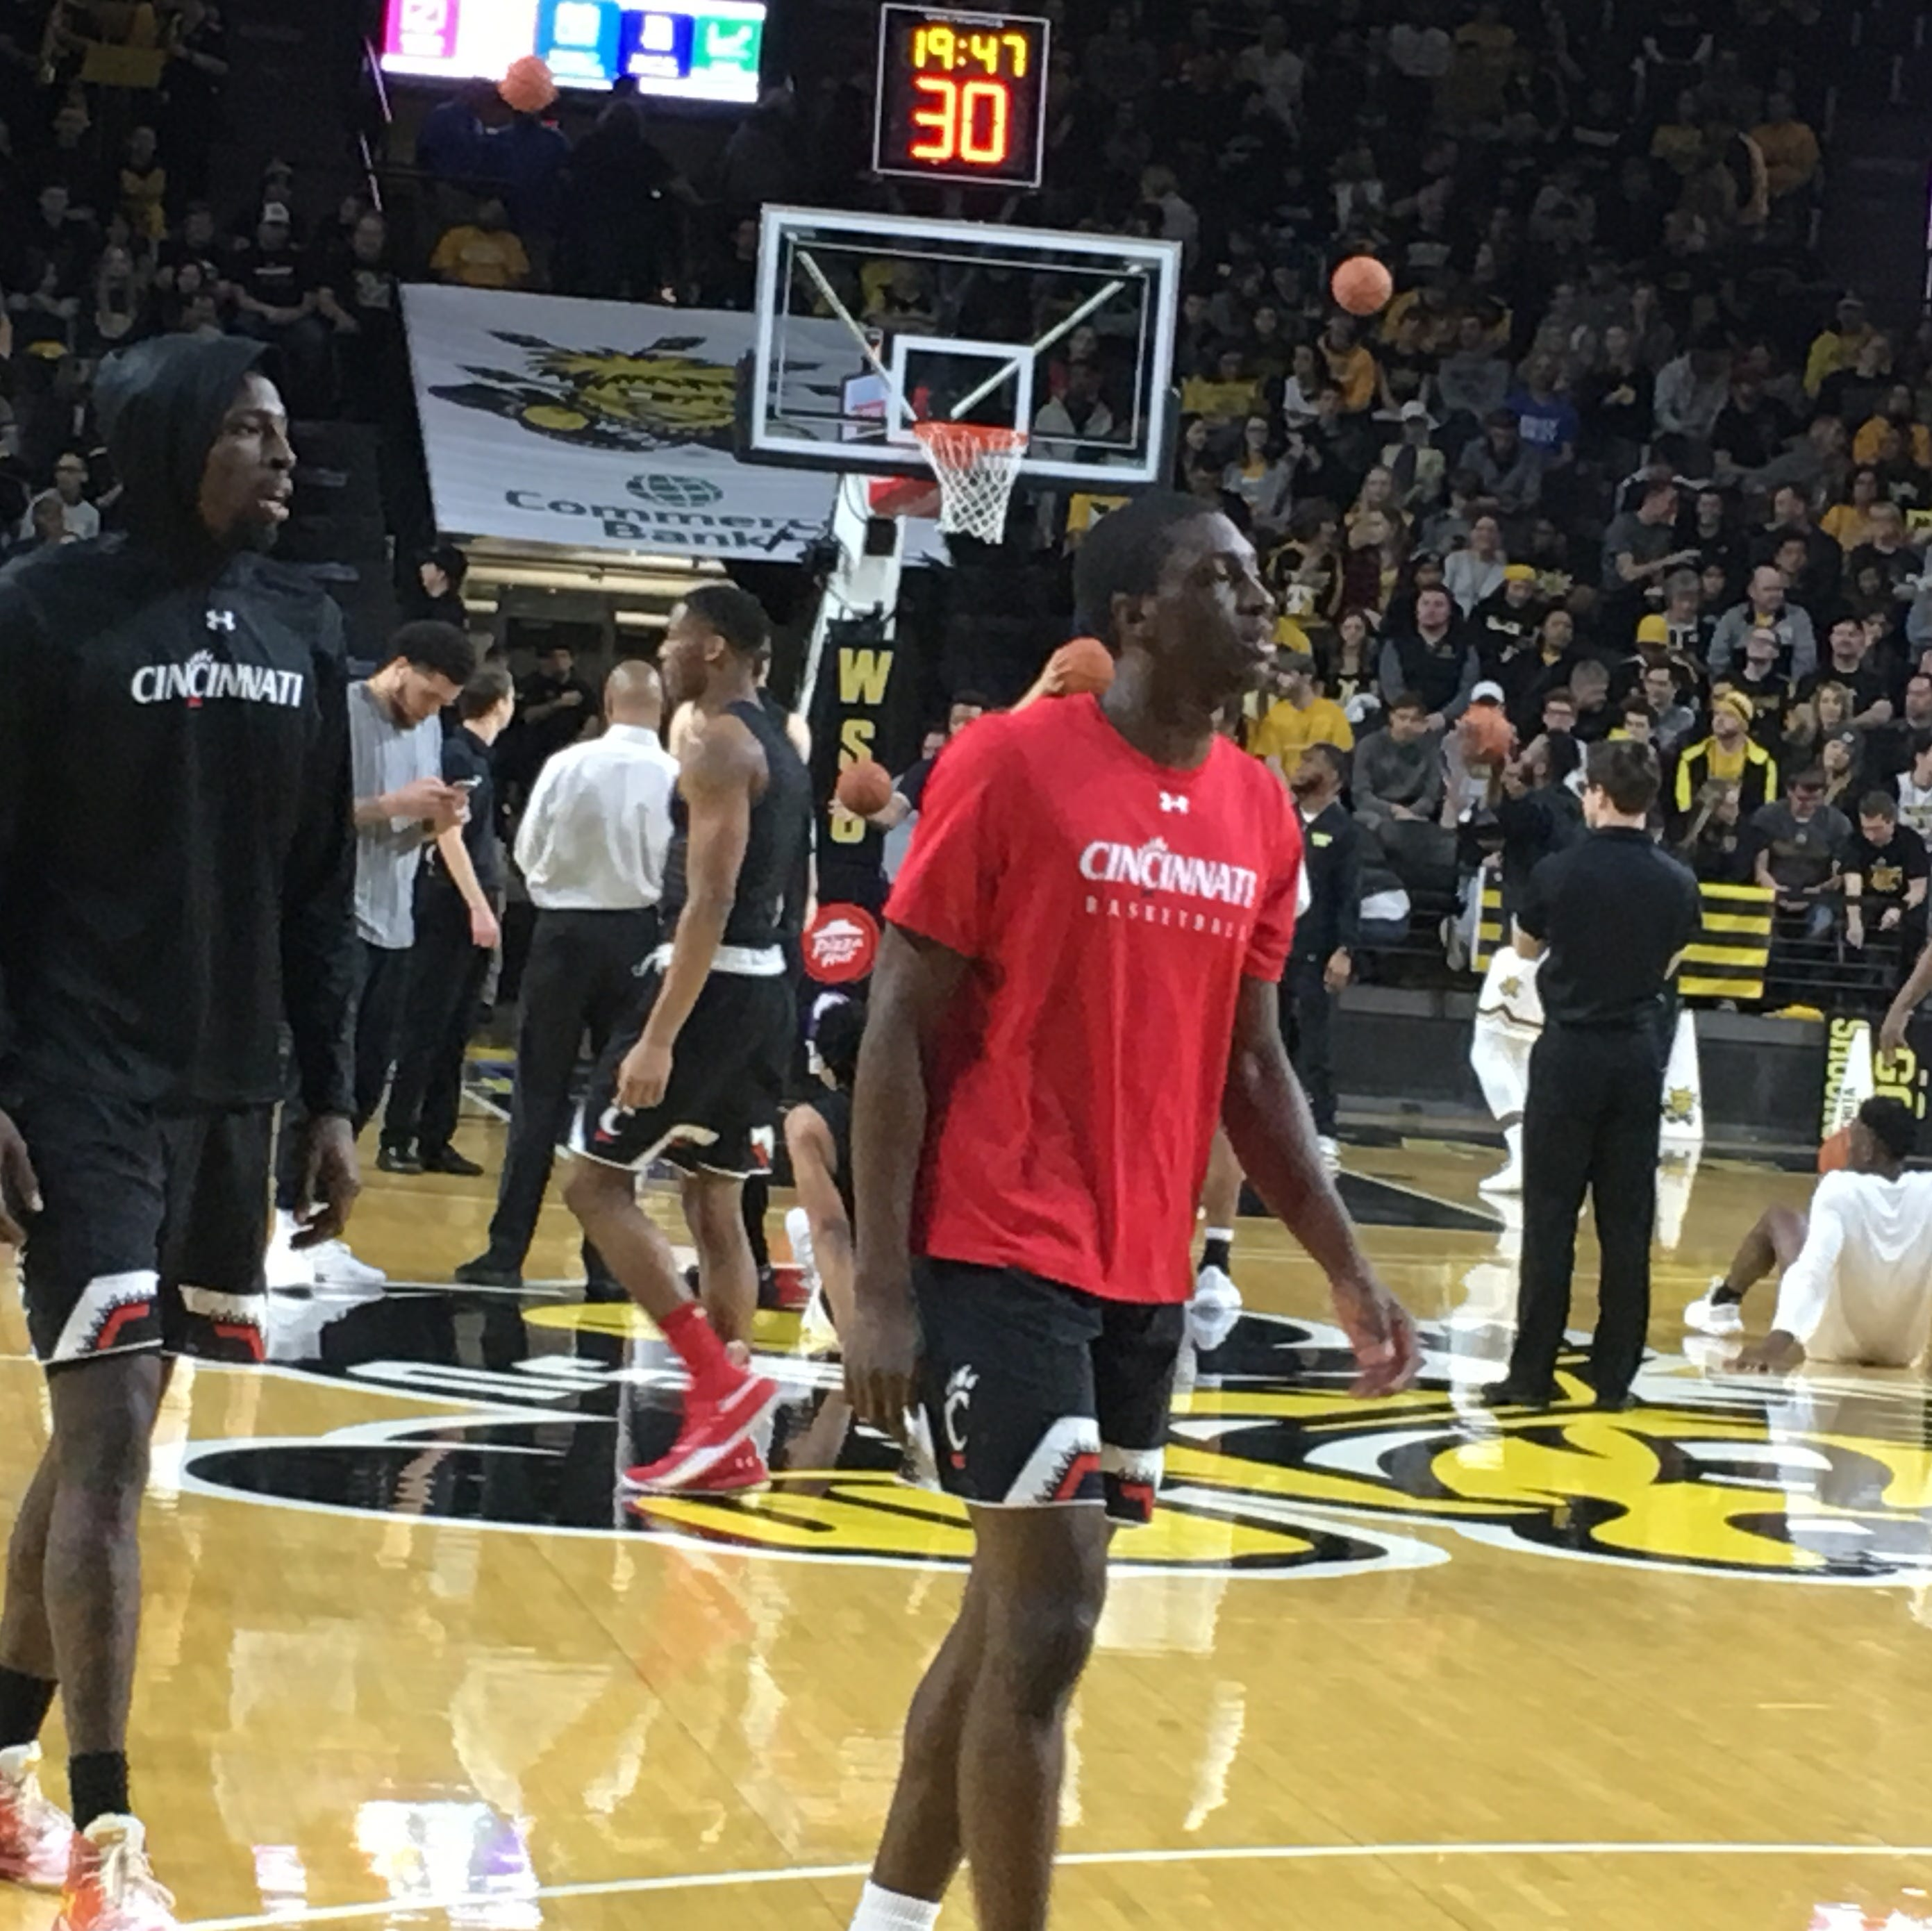 UC pulls away from Wichita State with late run, 66-55